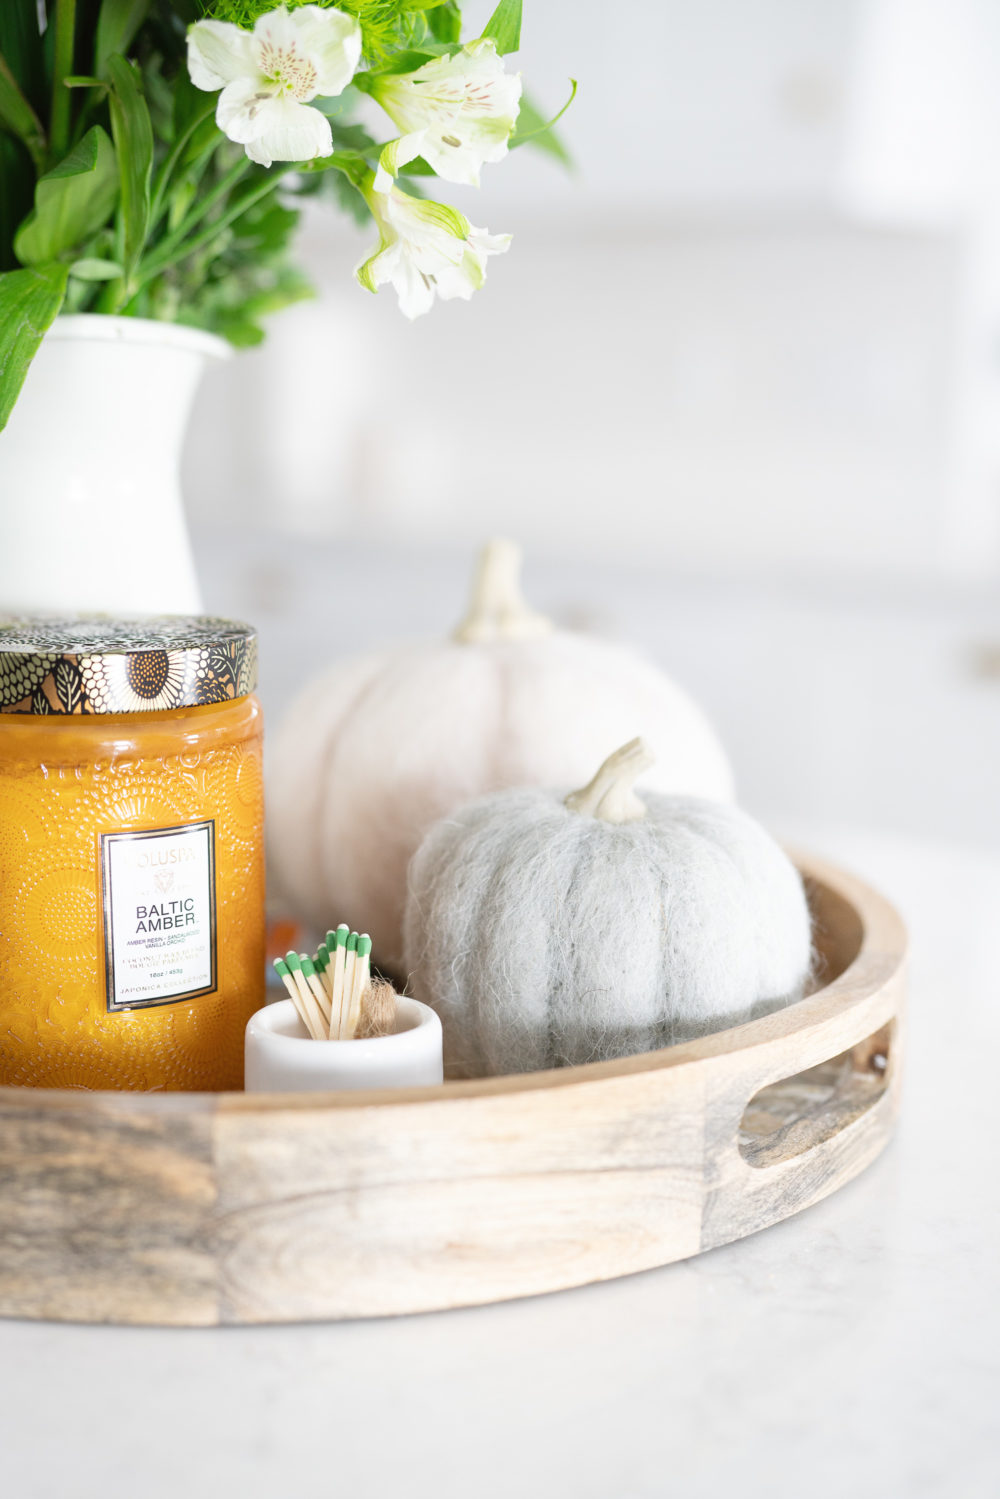 Petite Fashion Blog | Fall Home Decor Inspiration | Felt Pumpkins | Terrain Pumpkins | Voluspa Candle